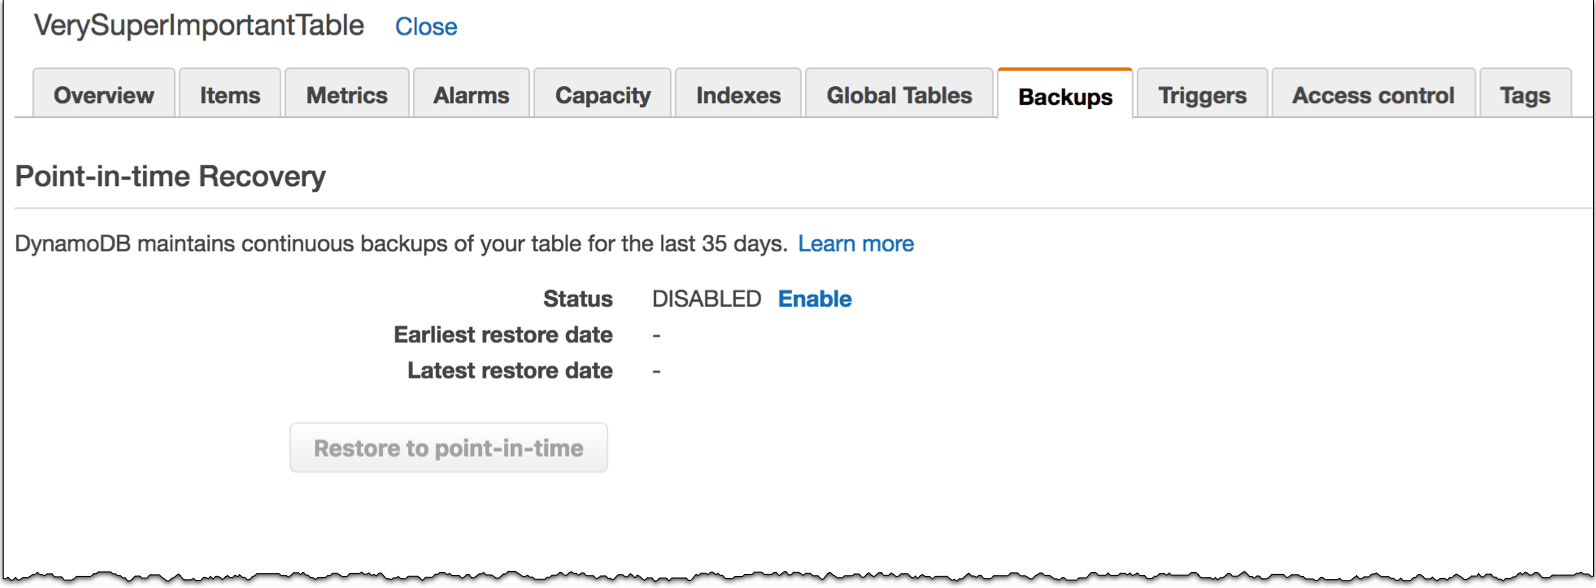 Baking Clouds - New – Amazon DynamoDB Continuous Backups and Point-In-Time Recovery (PITR)